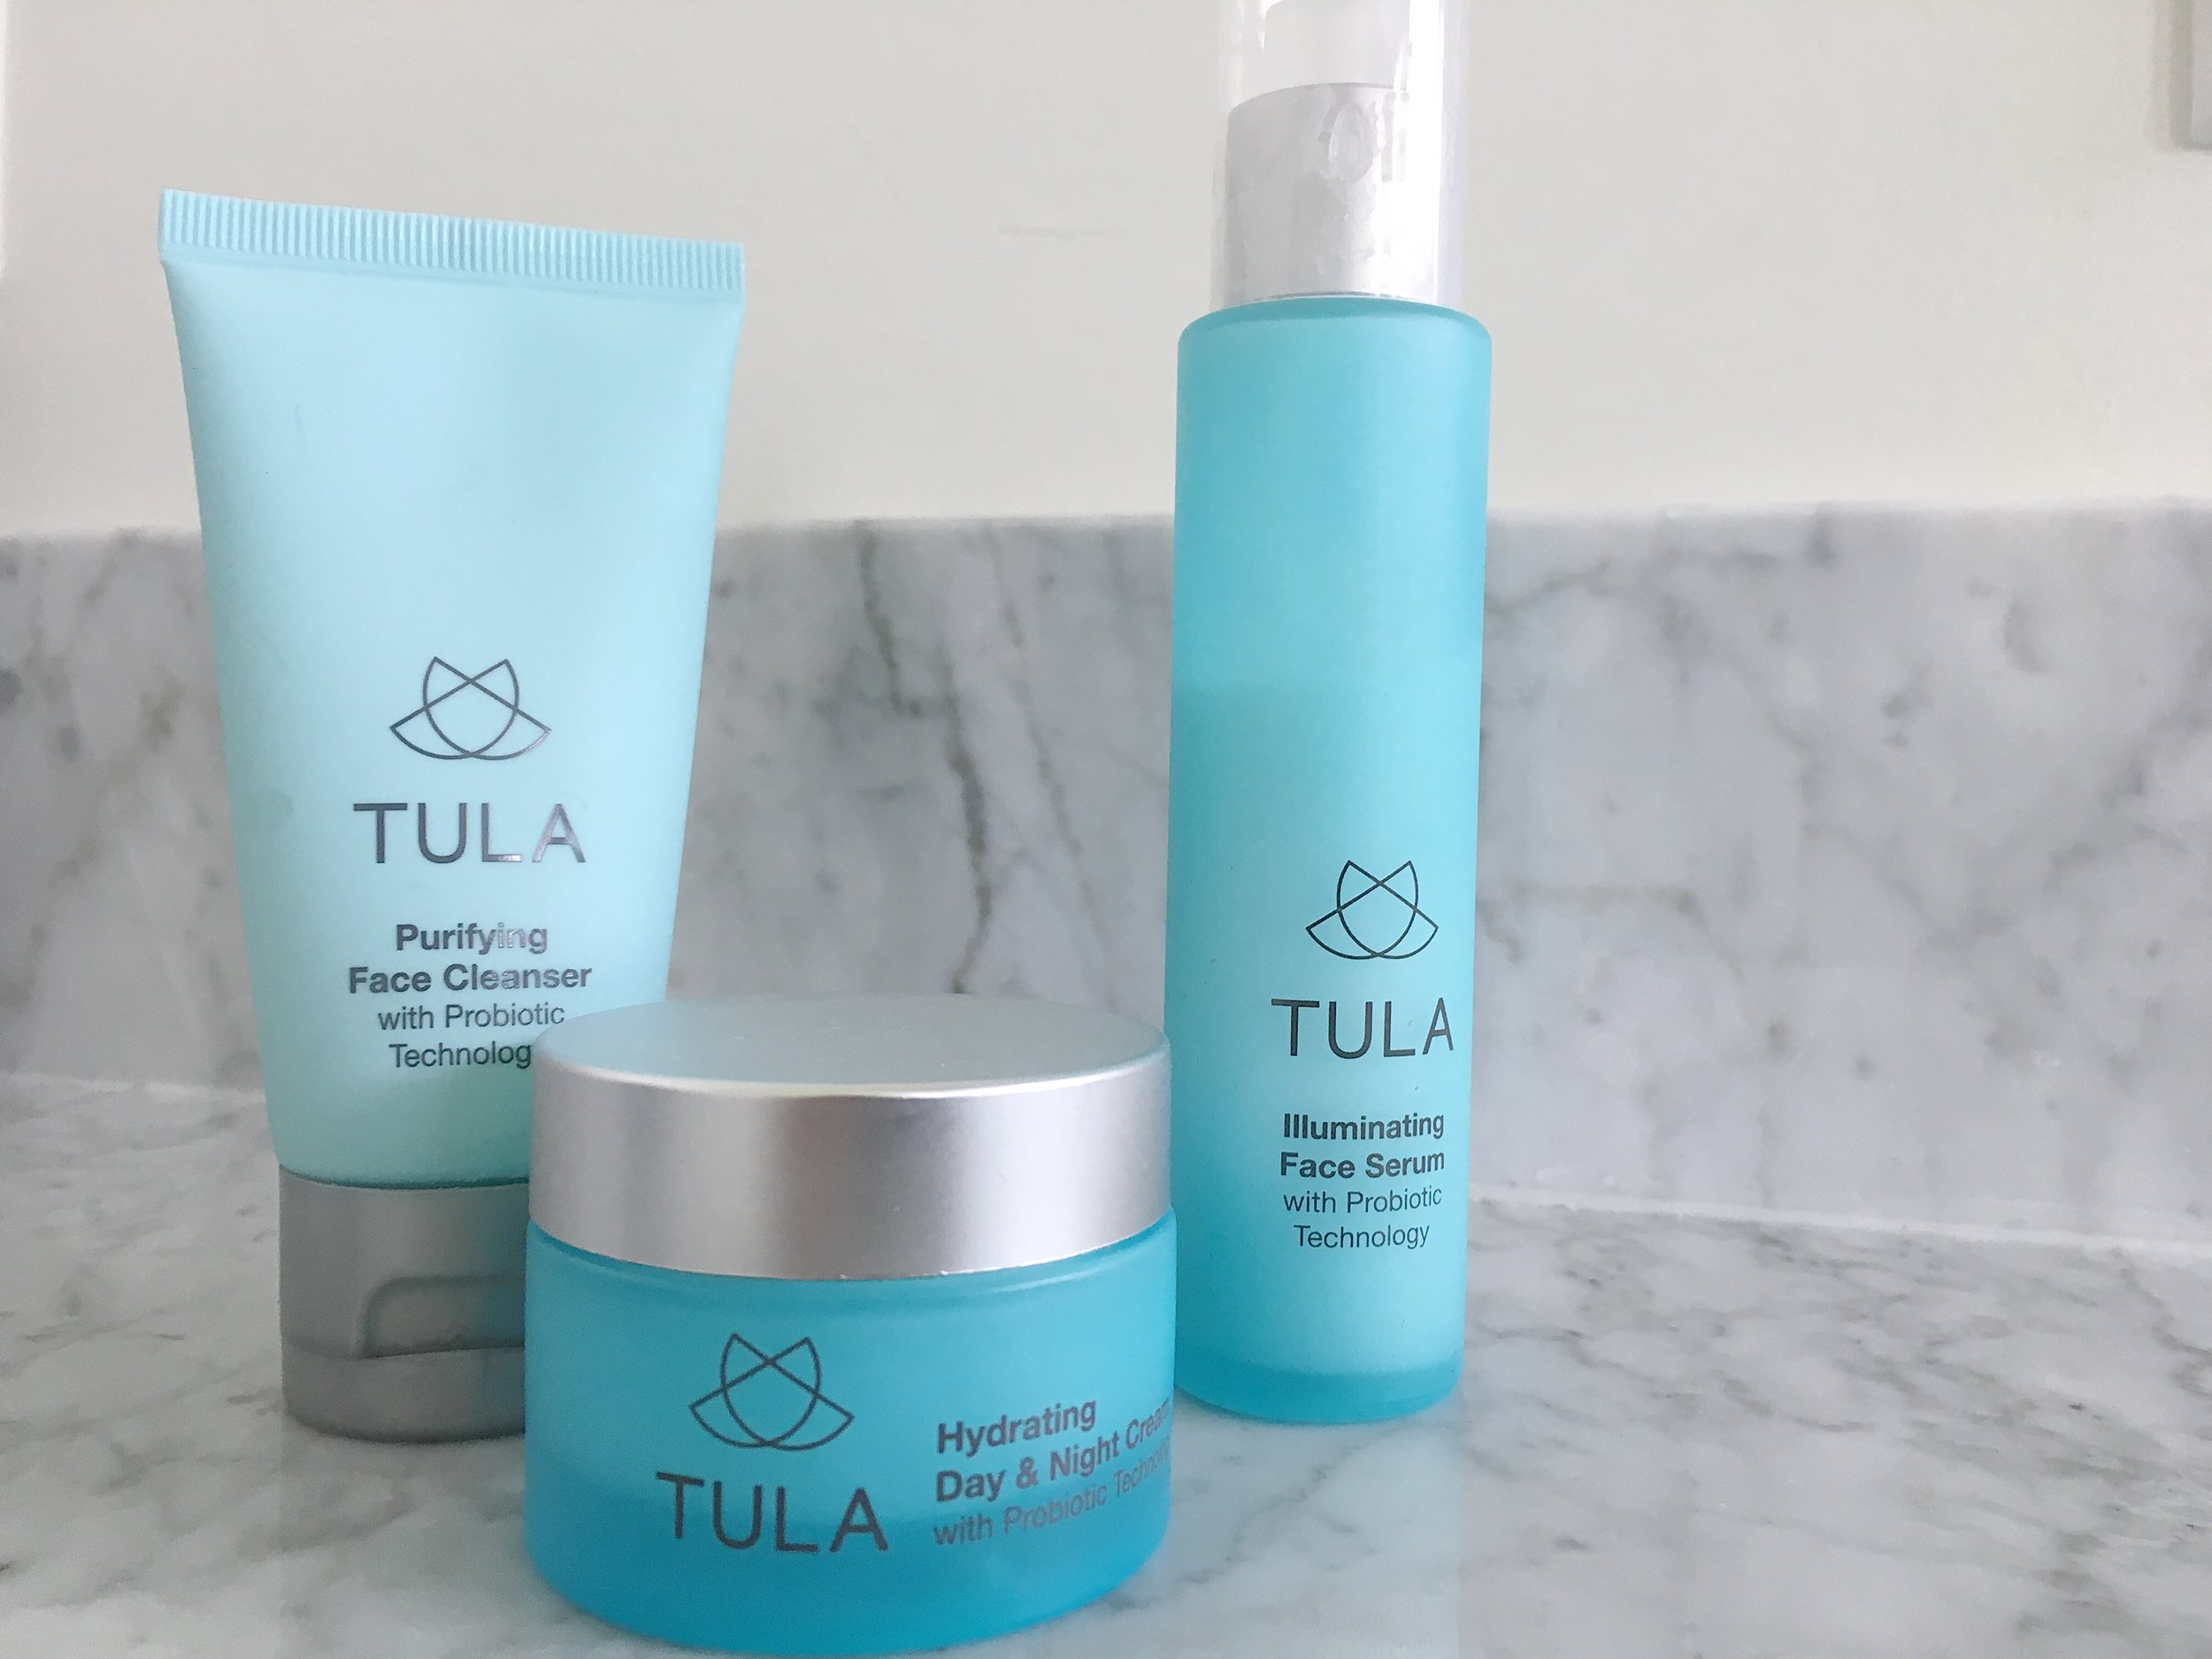 |  Tula cleanser  |  Tula day and night cream  |  Tula face serum  |